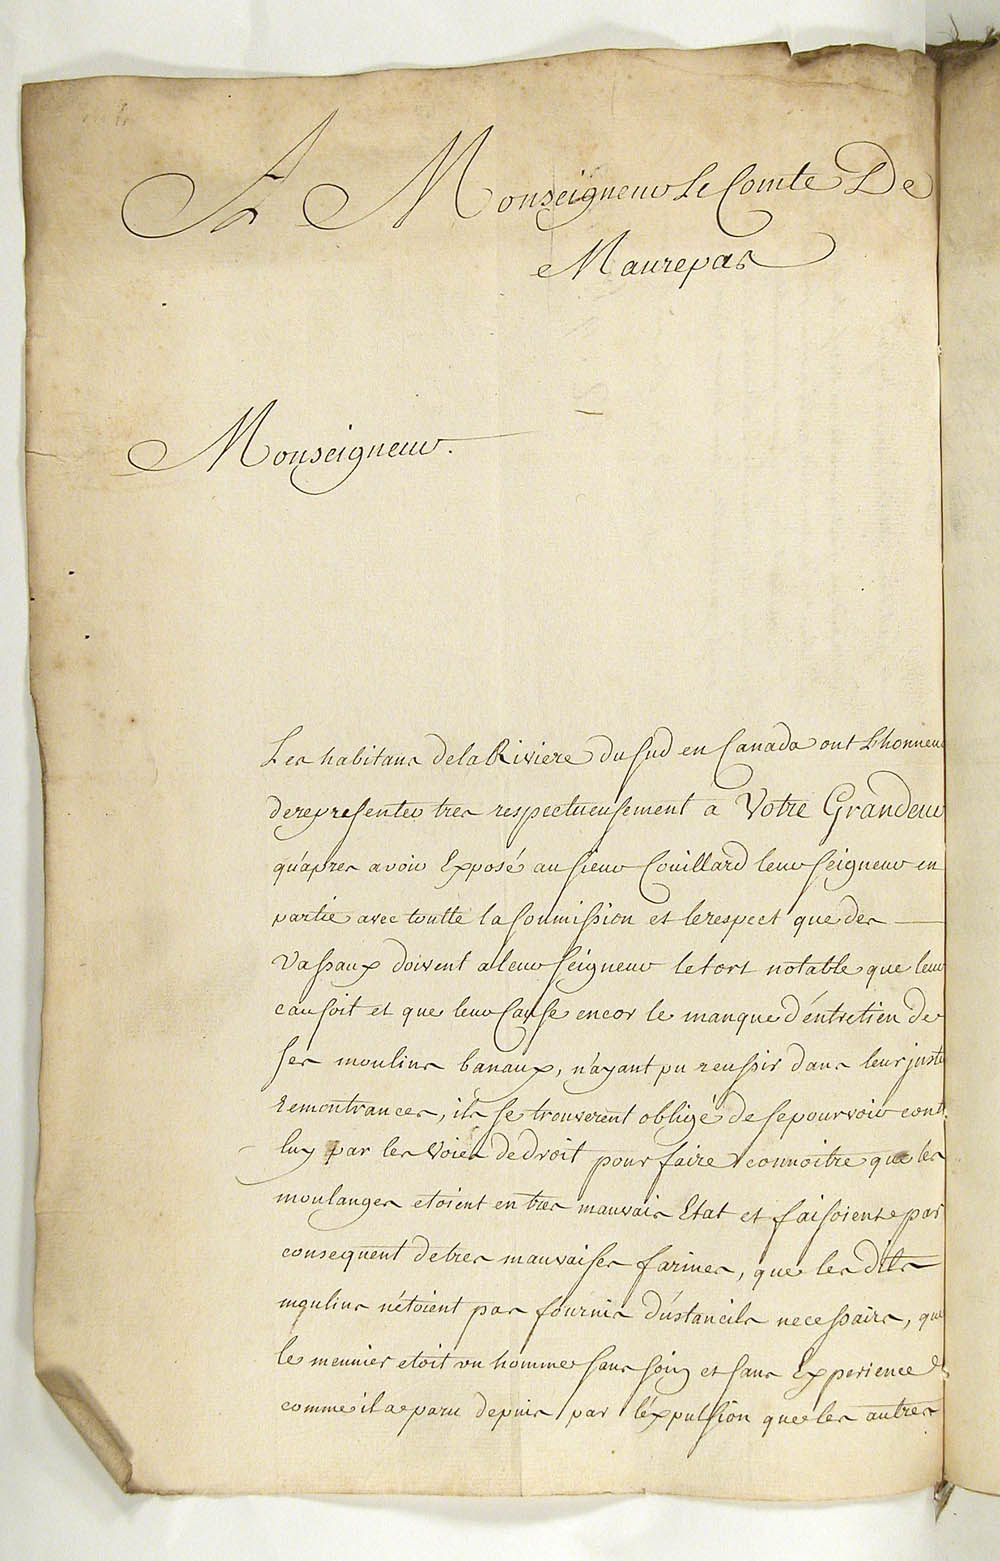 Petition to the Secretary of State for the Marine, Jean-Frédéric Phélypeaux, Comte de Maurepas, by Michel Morin, on behalf of the habitants of the Rivière du Sud, concerning the poor maintenance of the communal mills by the seigneur, Charles-Marie Couillard de Beaumont, ca. 1743   FR CAOM COL C11A 81 fol. 104-105vo